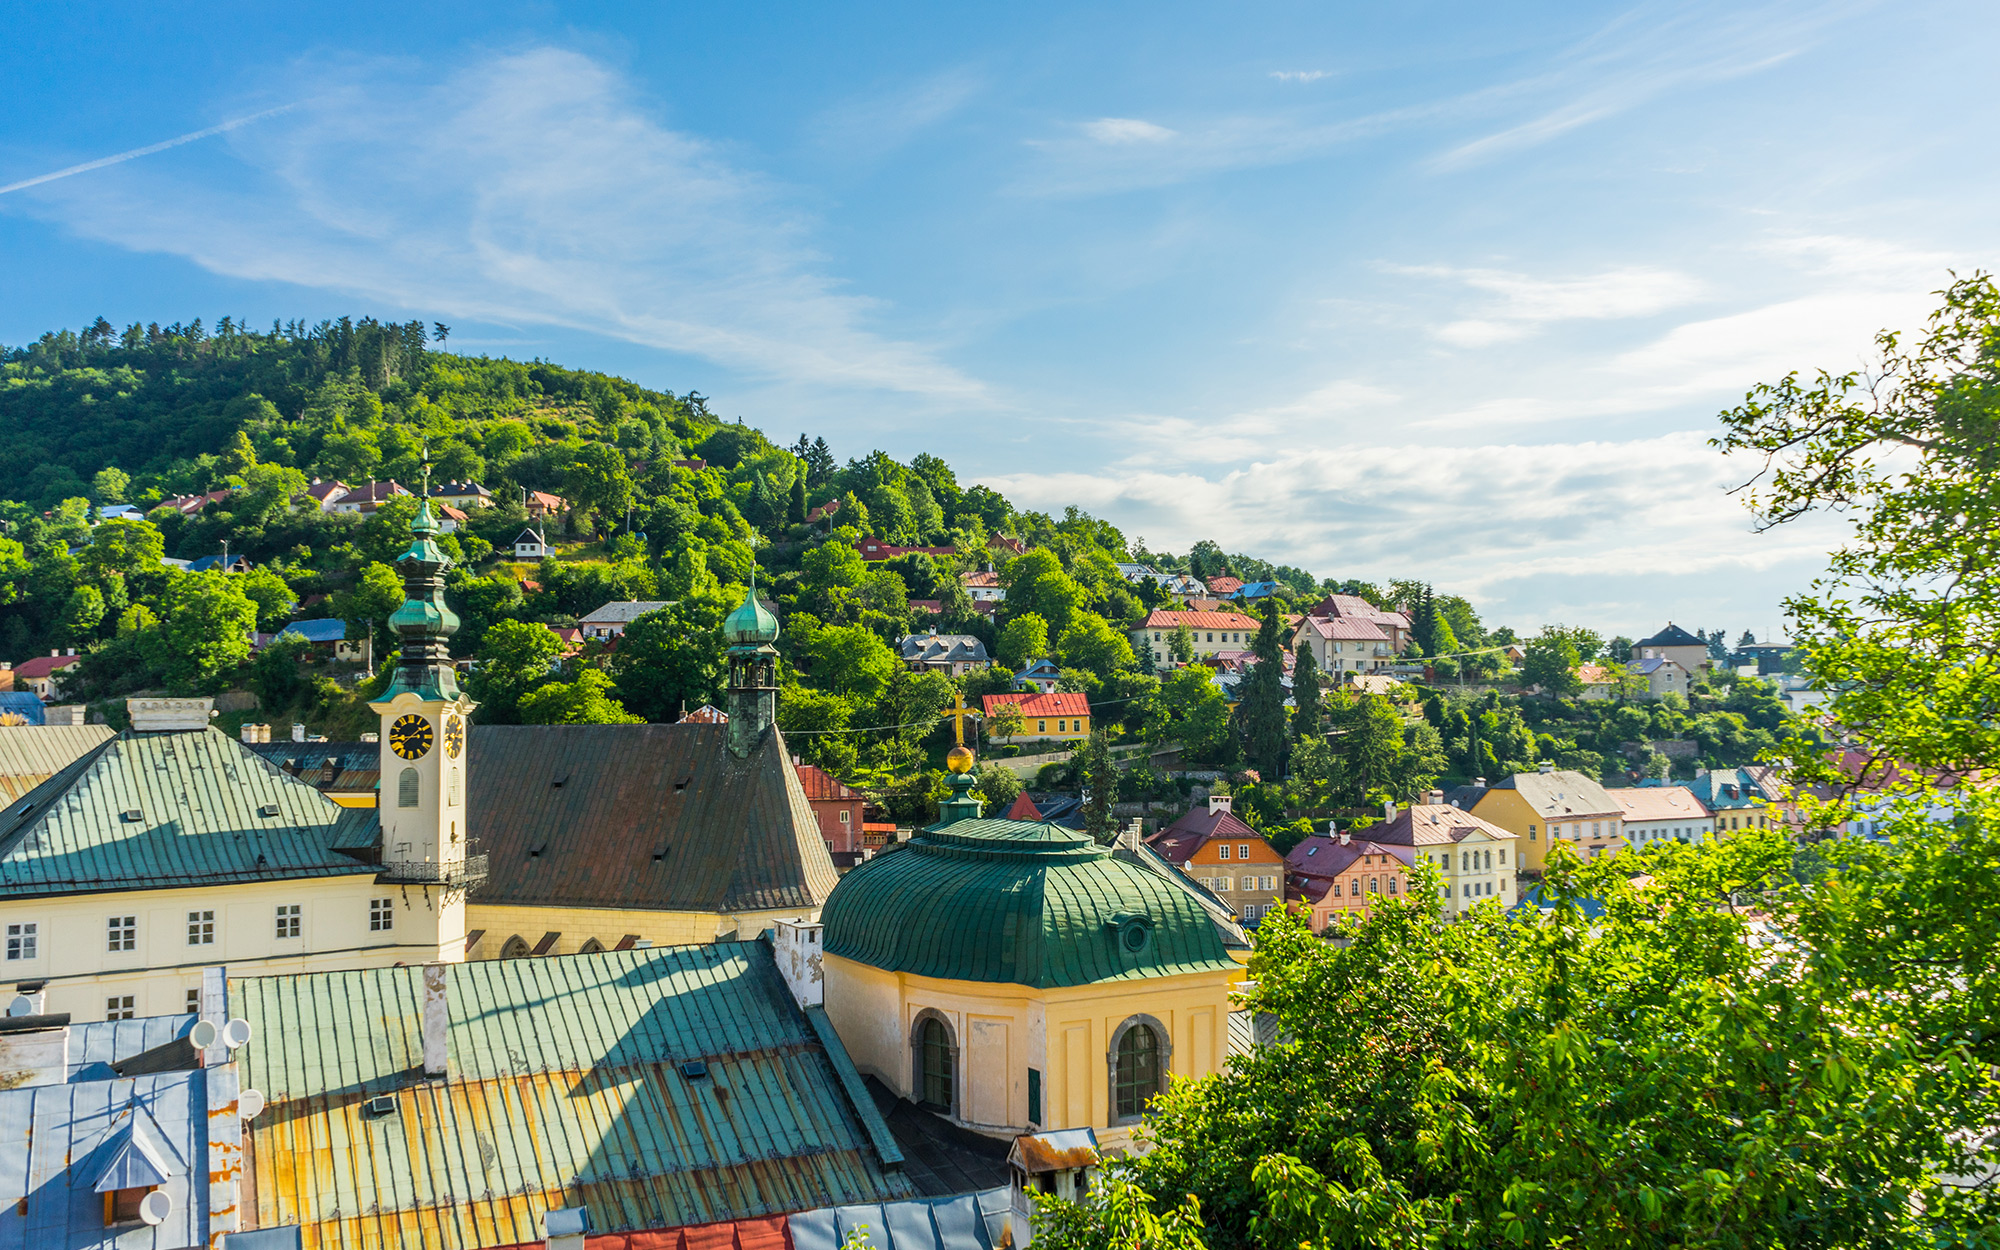 Europe's Most Beautiful Villages: Banksa Stiavnica, Slovakia